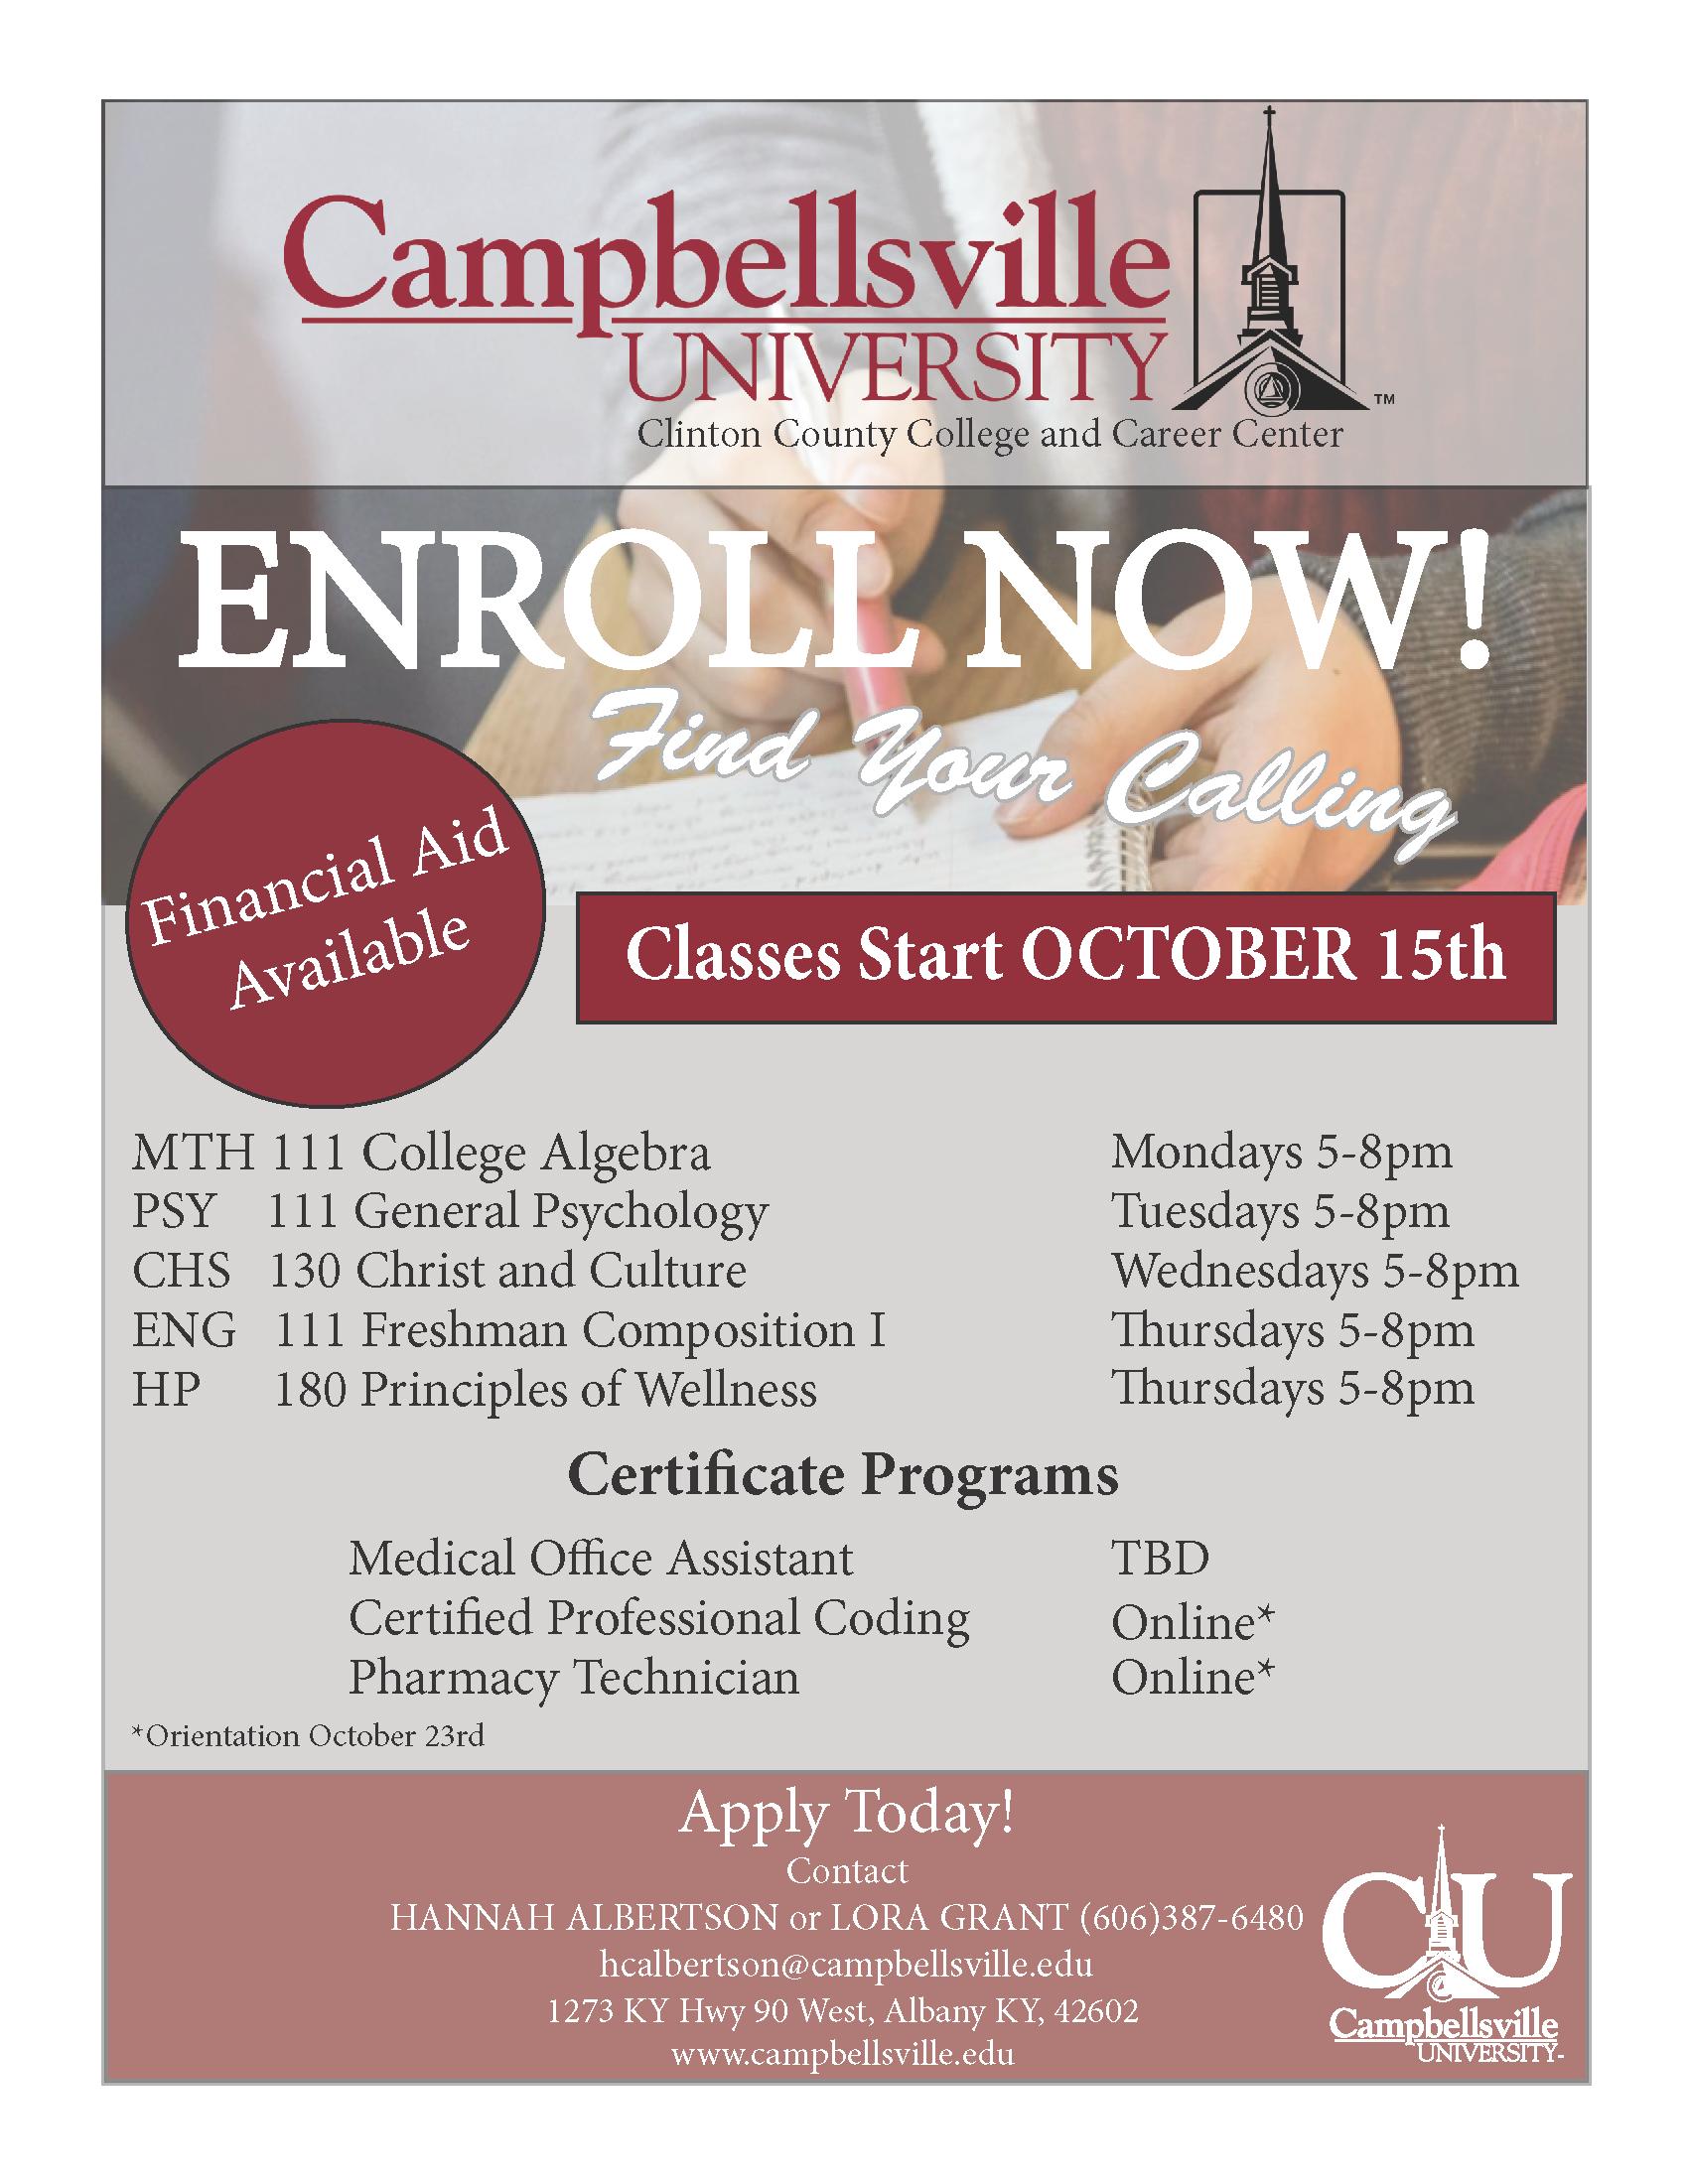 Campbellsville University will offer five evening classes at the Clinton Center, beginning in October.